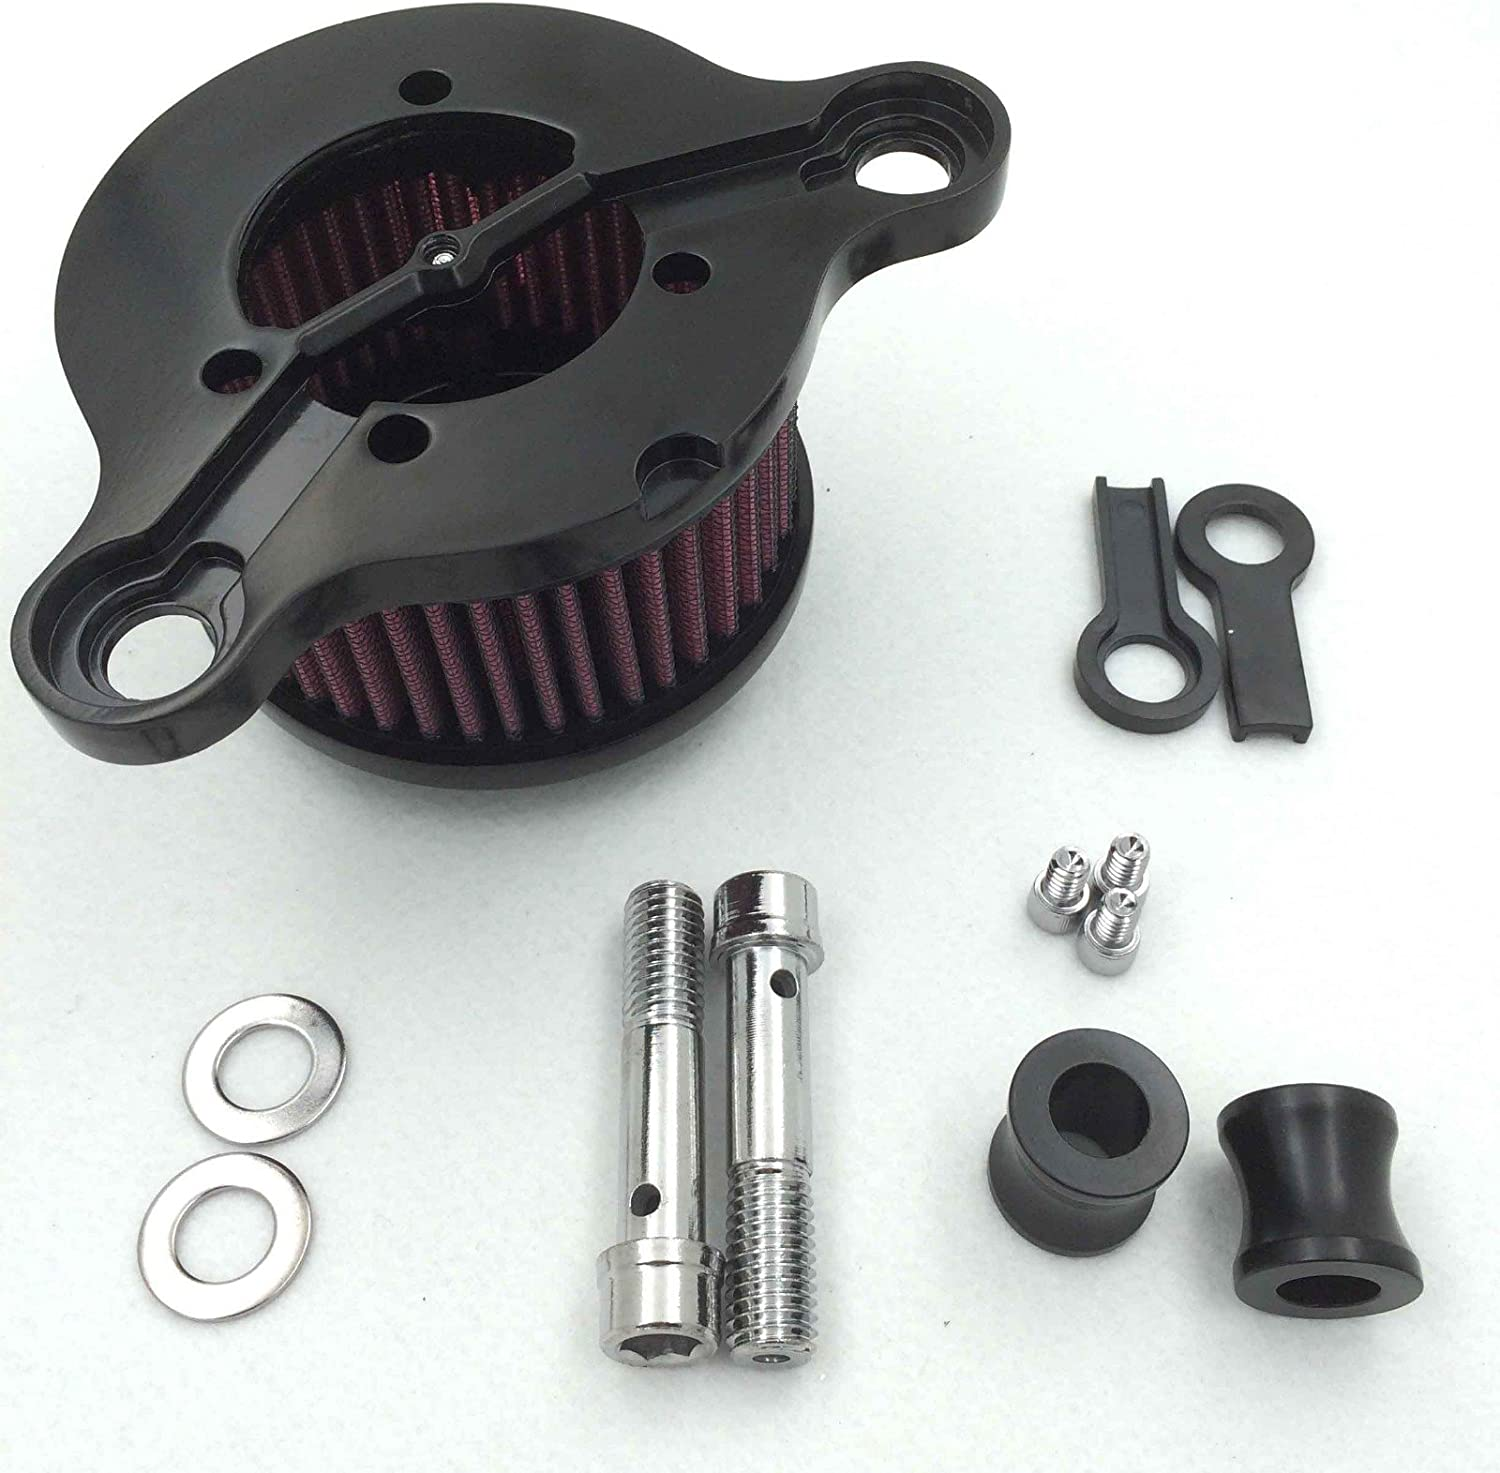 HTTMT MT225-010B Black Skull with Cross Bone Air Cleaner Intake Filter System Kit Compatible with Harley Davidson Sportster XL883 XL1200 1988 to 2015